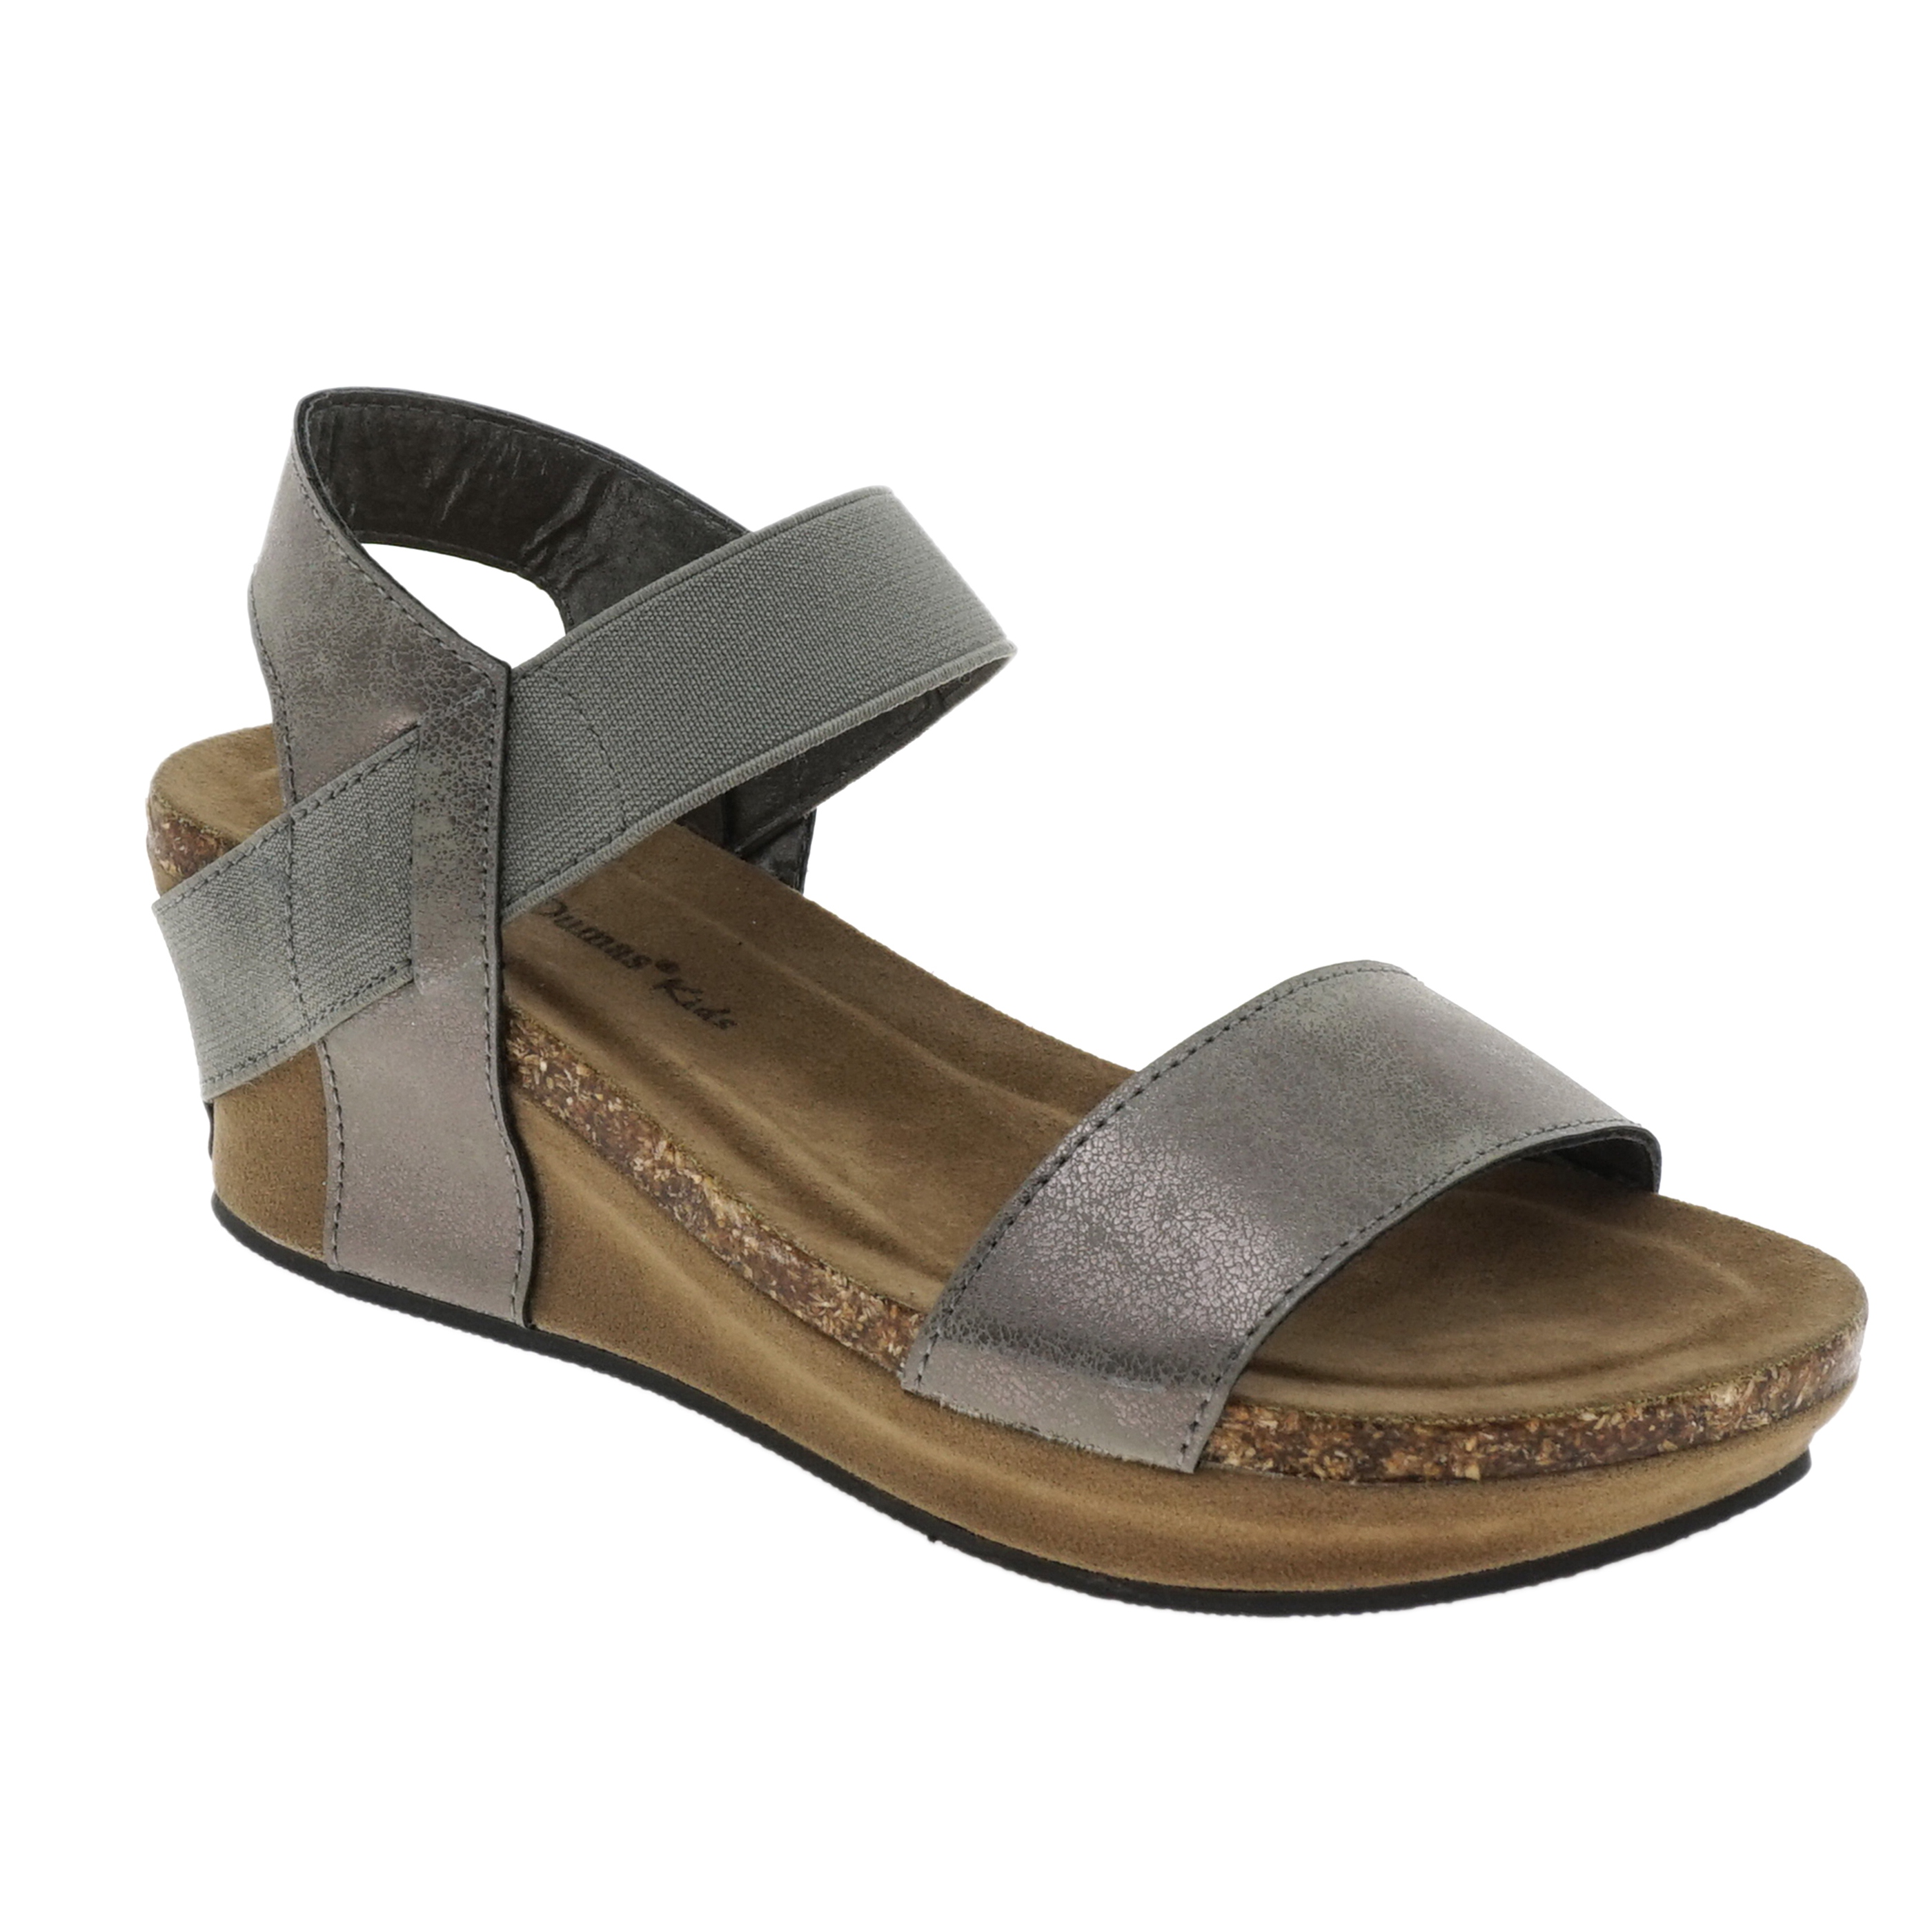 975cc958be 42553 - CHIC-3. Sandals by Pierre Dumas Kids